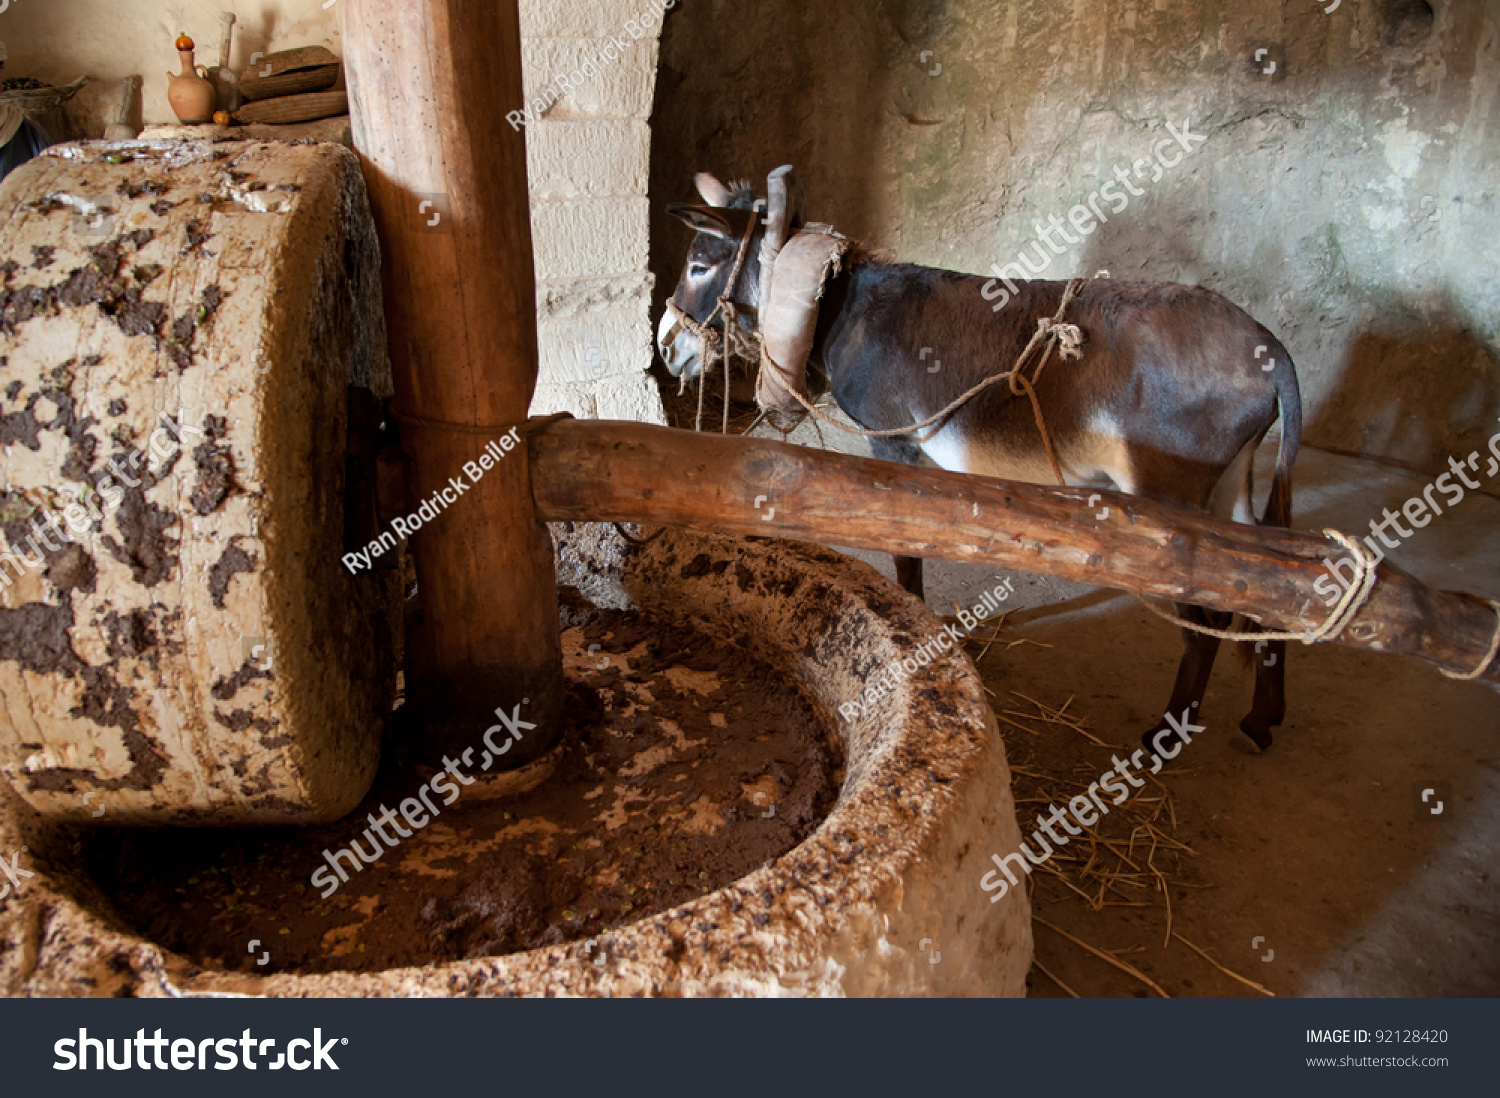 Animal Crush Donkeypowered Olive Oil Press Which Animal Stock Photo Edit Now